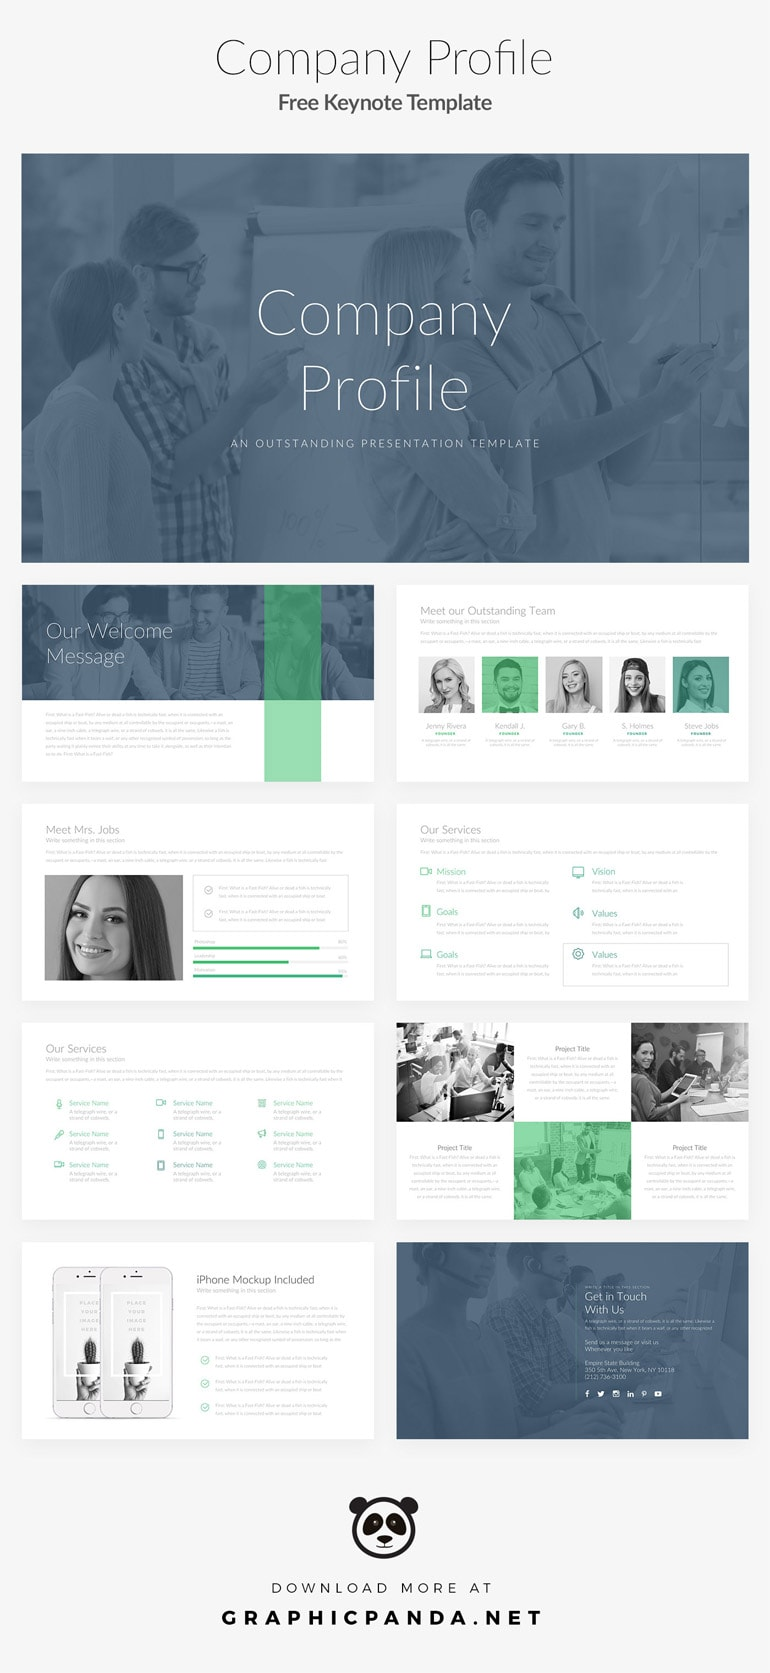 Image Titled: keynote templates free download 7